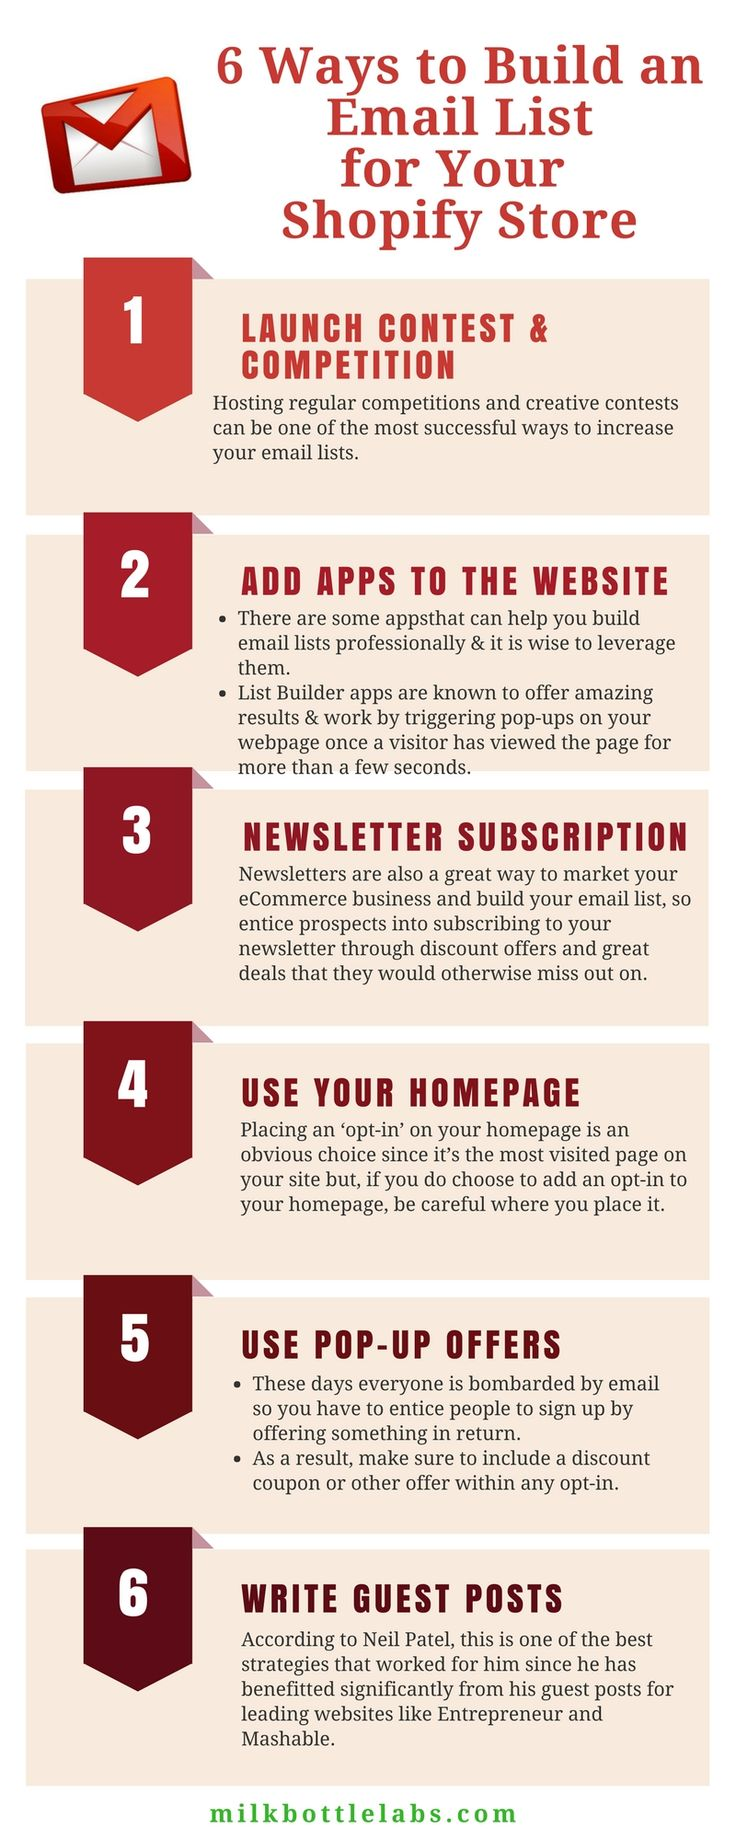 how do you get people to 'opt-in' to an #emaillist  that will deliver #news and #updates related to your #store? Here are 6 great ways: